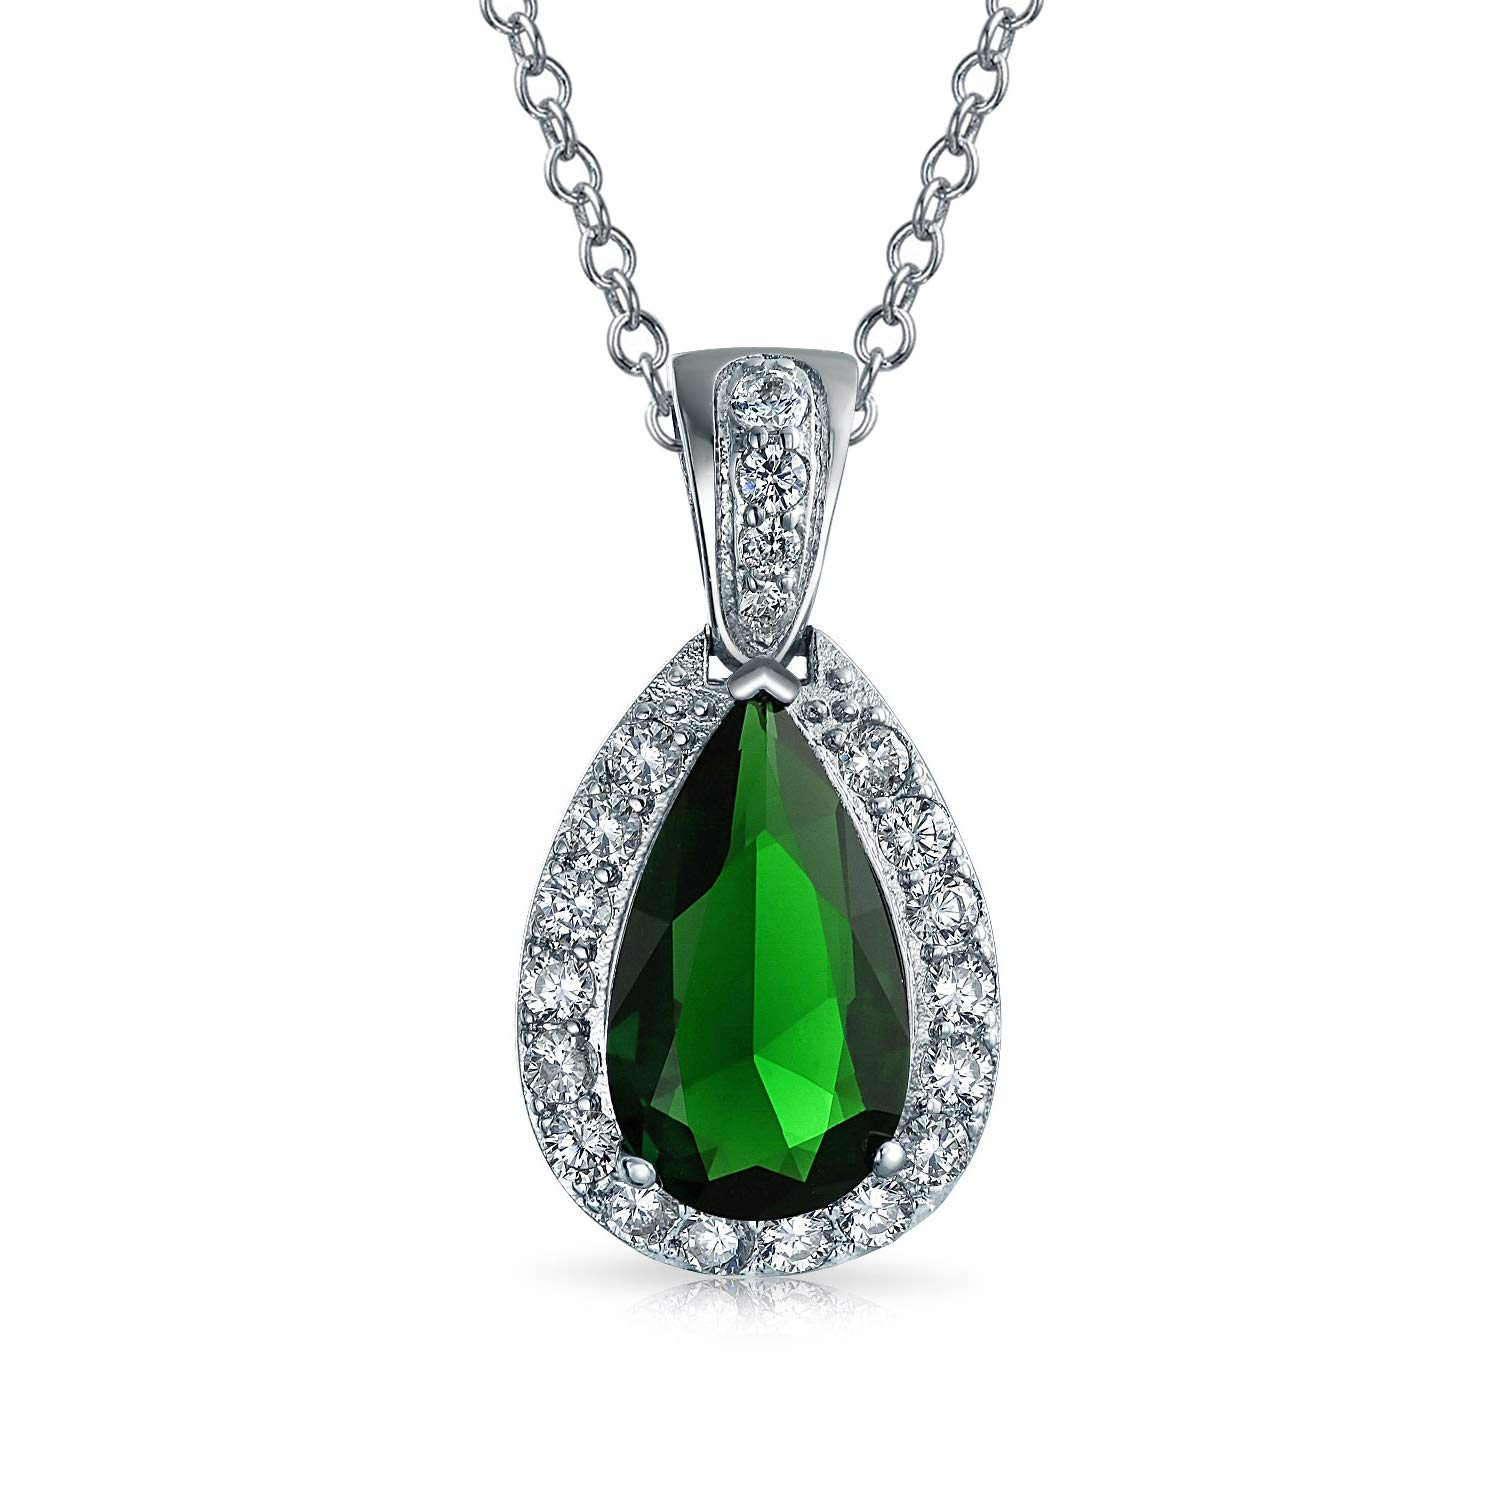 Green Pear Shaped Tear Drop Pendant Necklace for Women Pace CZ Halo Simulated Emerald Rhodium Plated Brass 18 Inch Chain